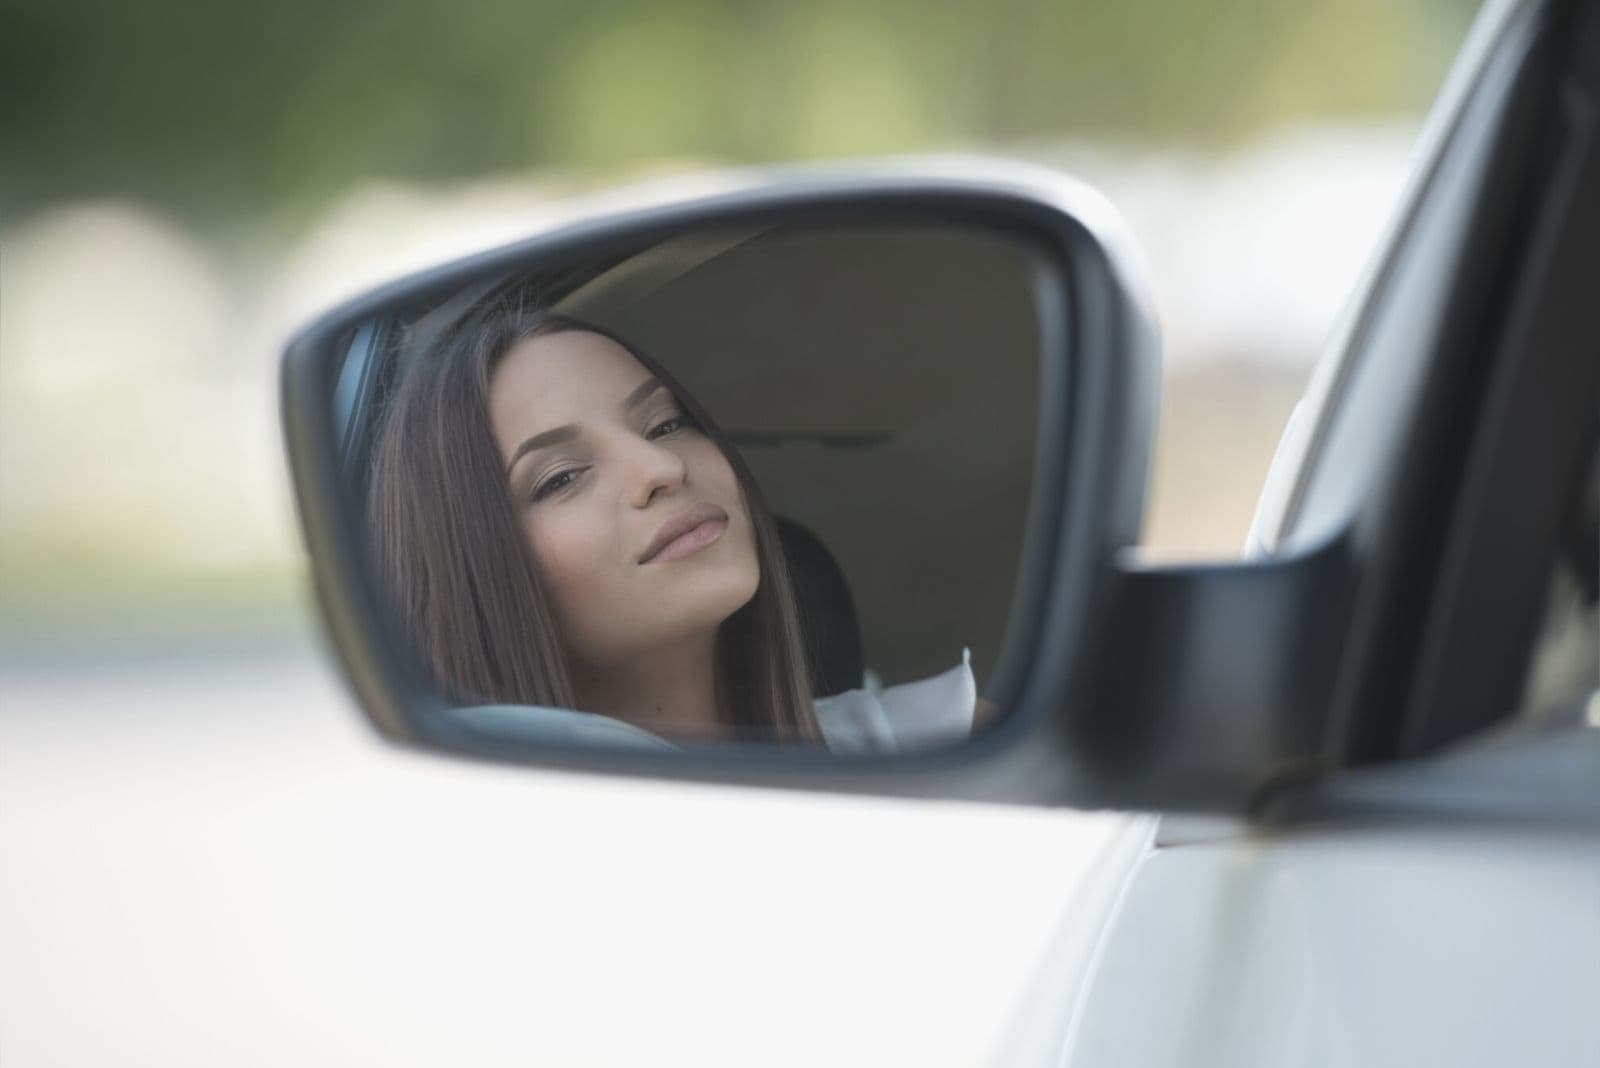 woman looking at herself in the side mirror of her car while driving